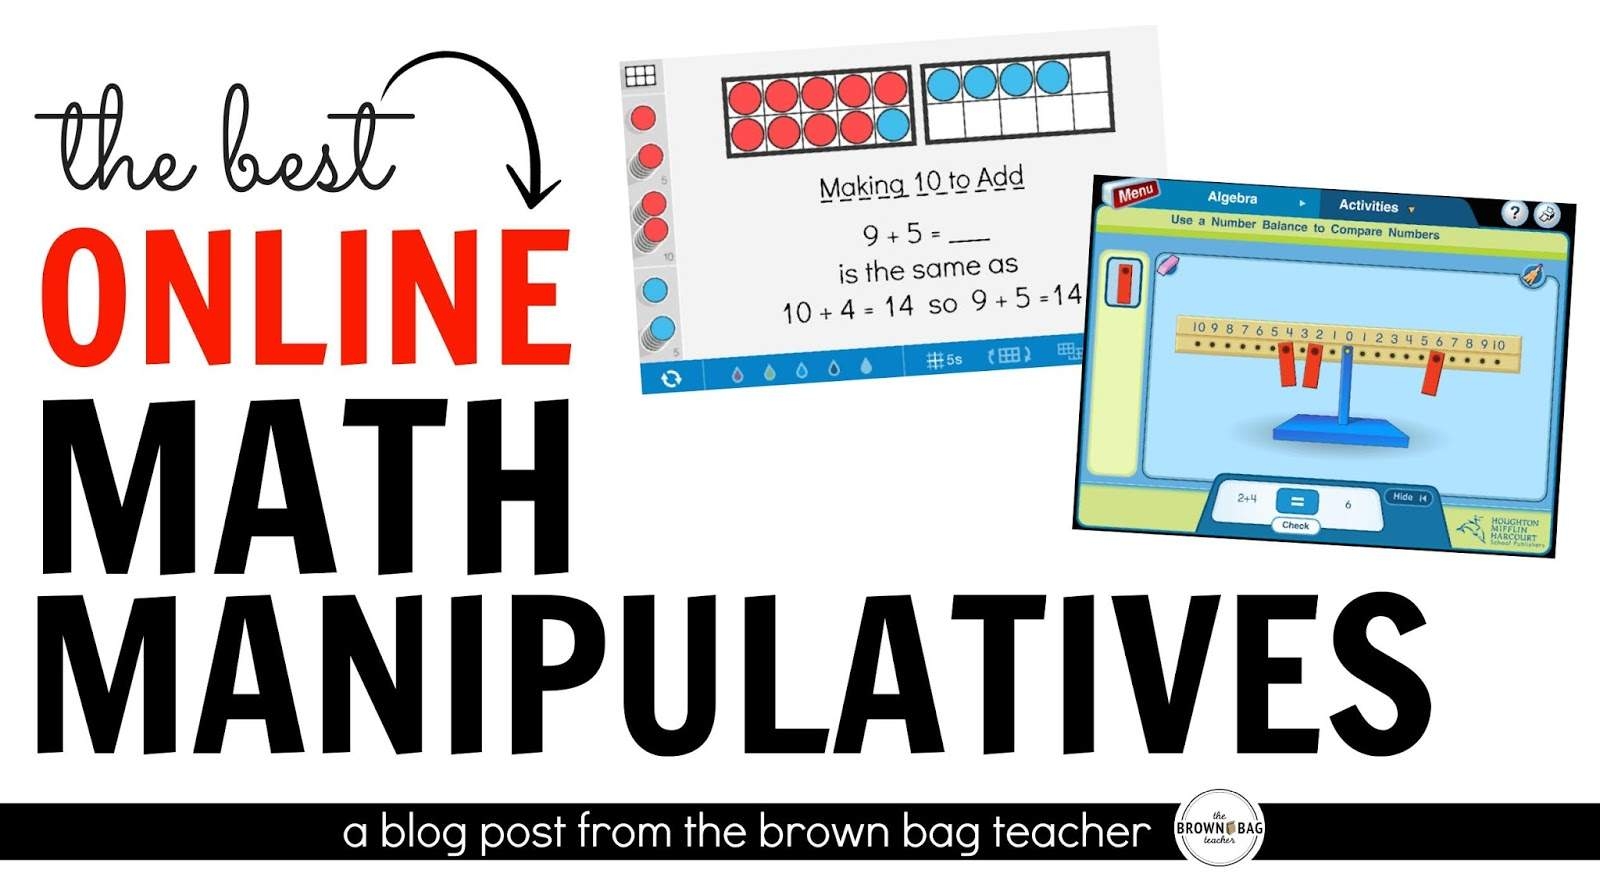 Math Manipulatives offer students a real, hands-on way to explore a mathematical concept, build their own meaning, and help develop number sense!